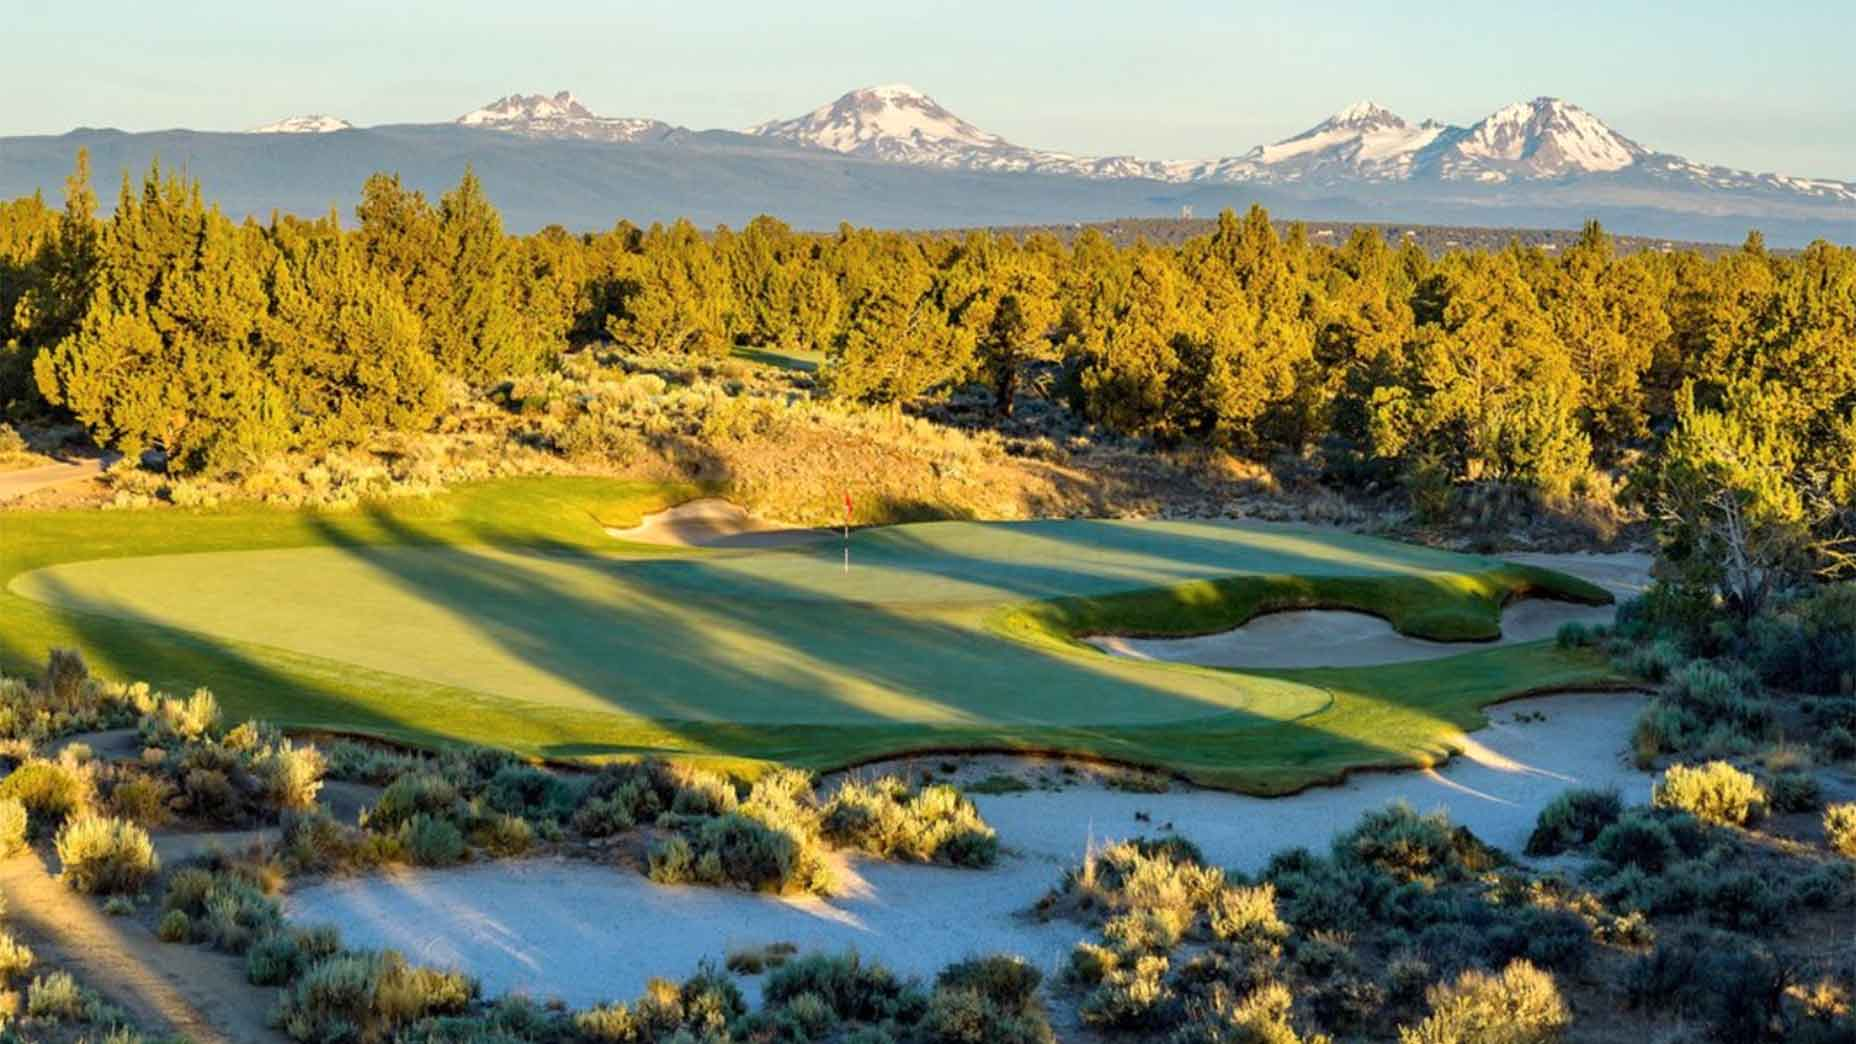 The Nicklaus Pronghorn course.